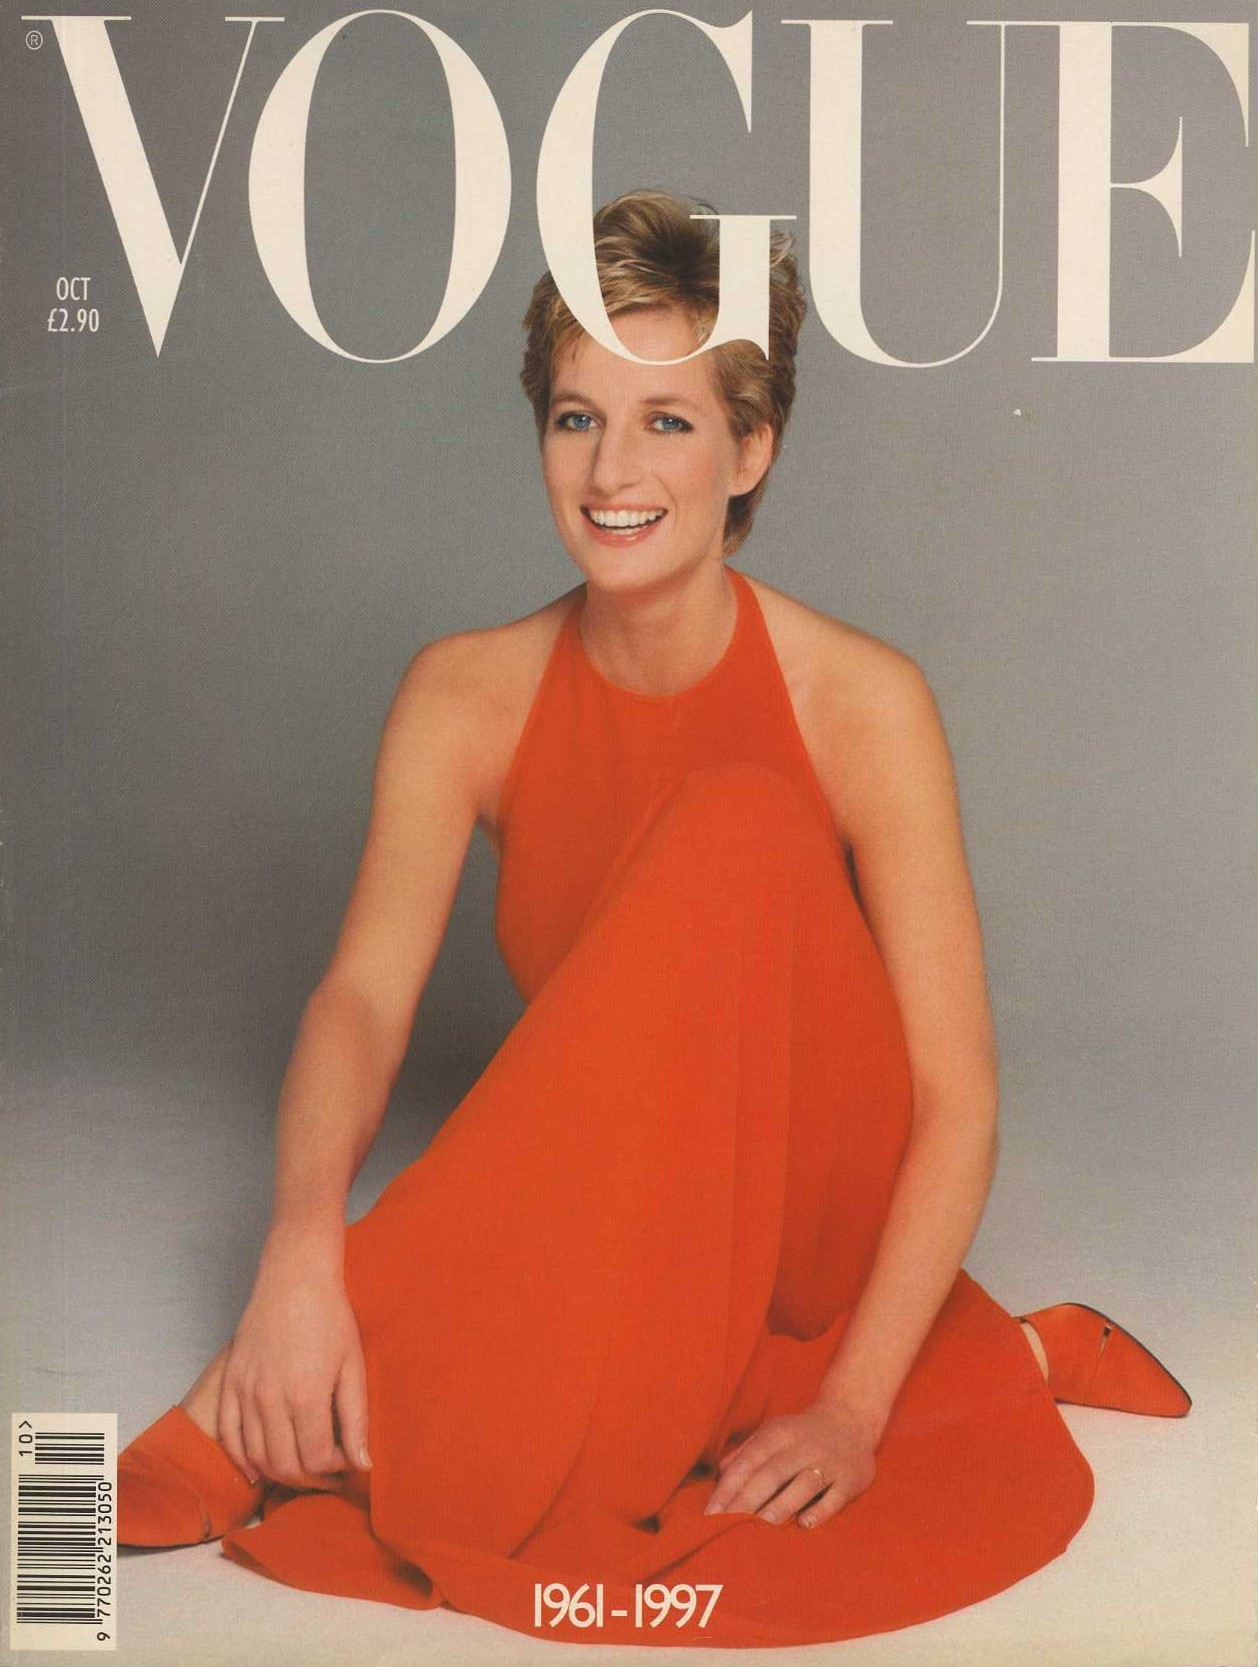 diana princess of wales photography patrick demarchelier 1994 british vogue october 1997